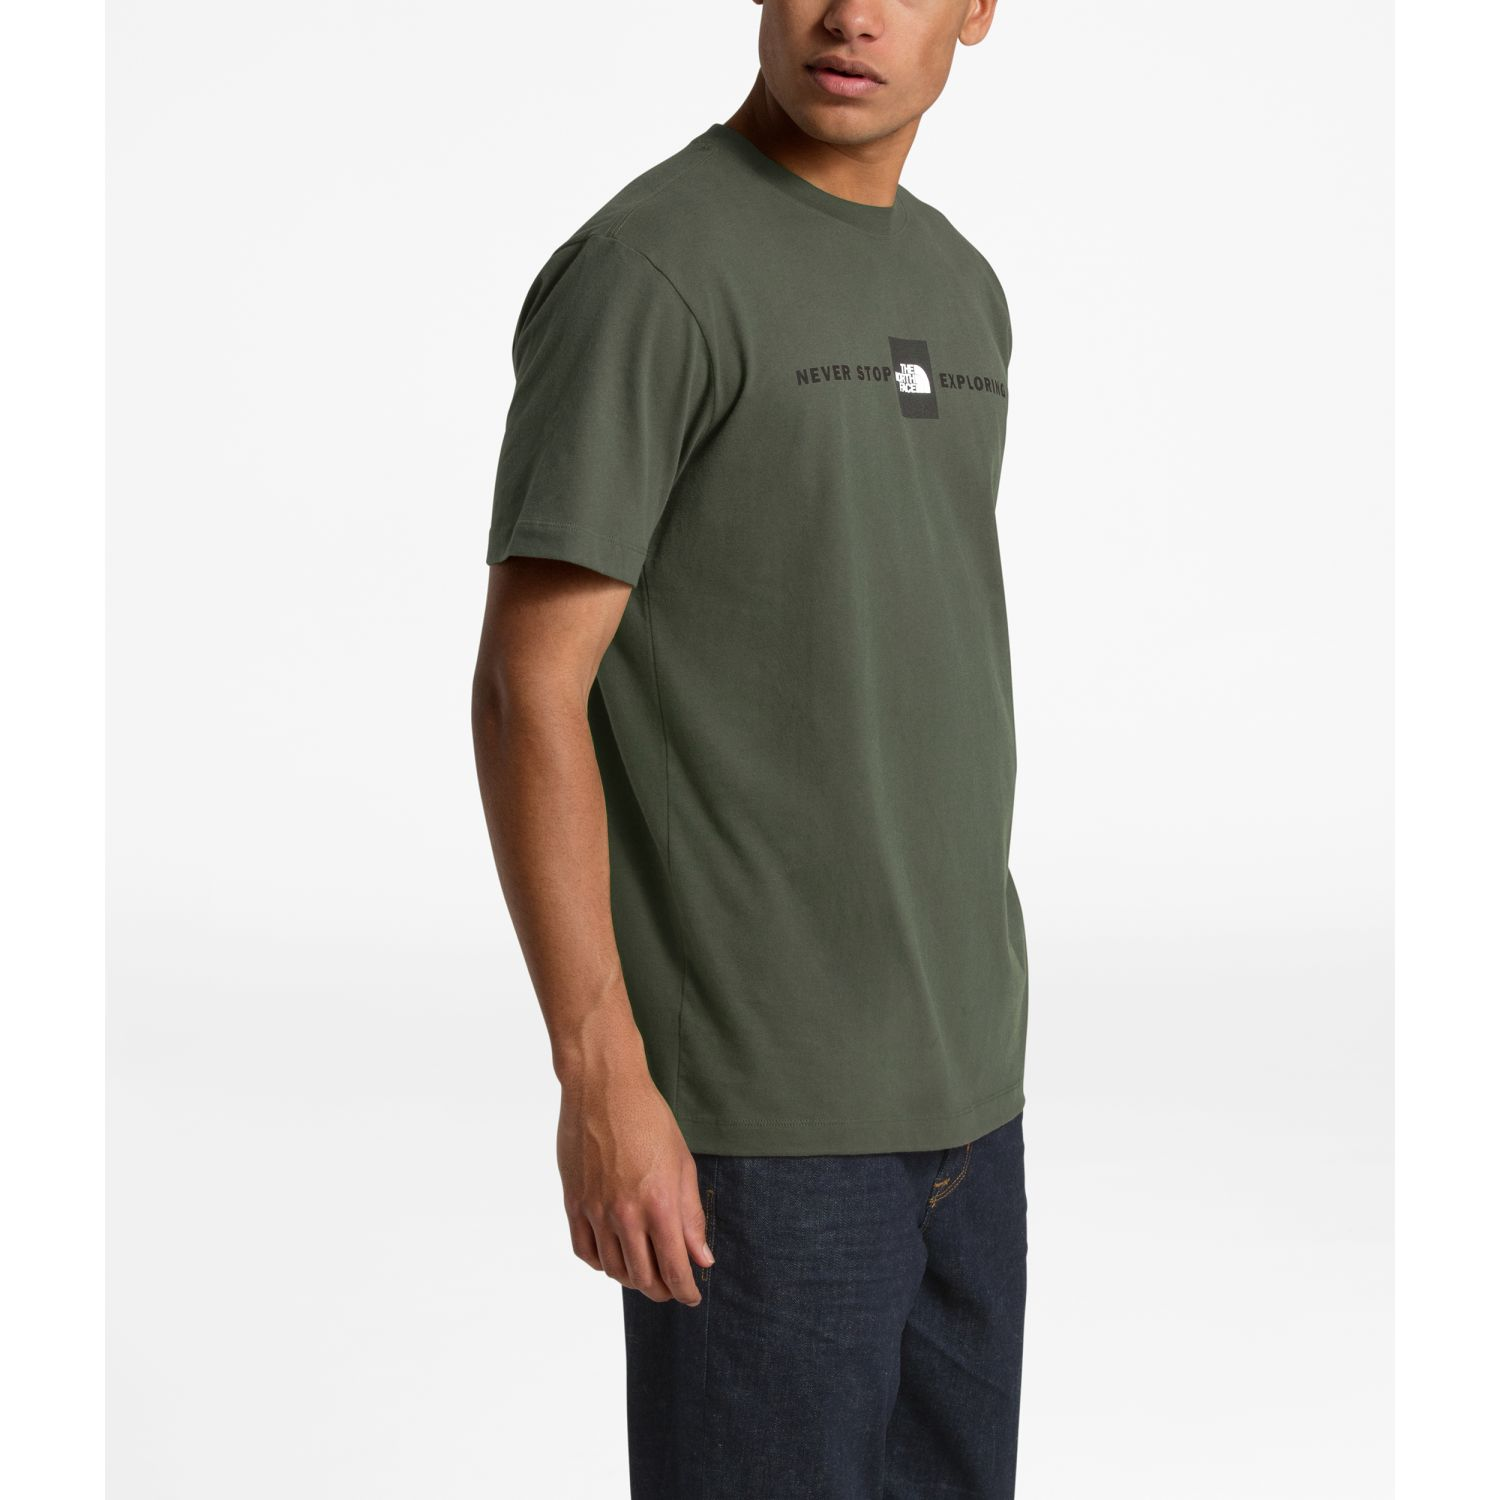 The North Face m s/s red's cotton tee Olivo Camisetas y Polos Deportivos